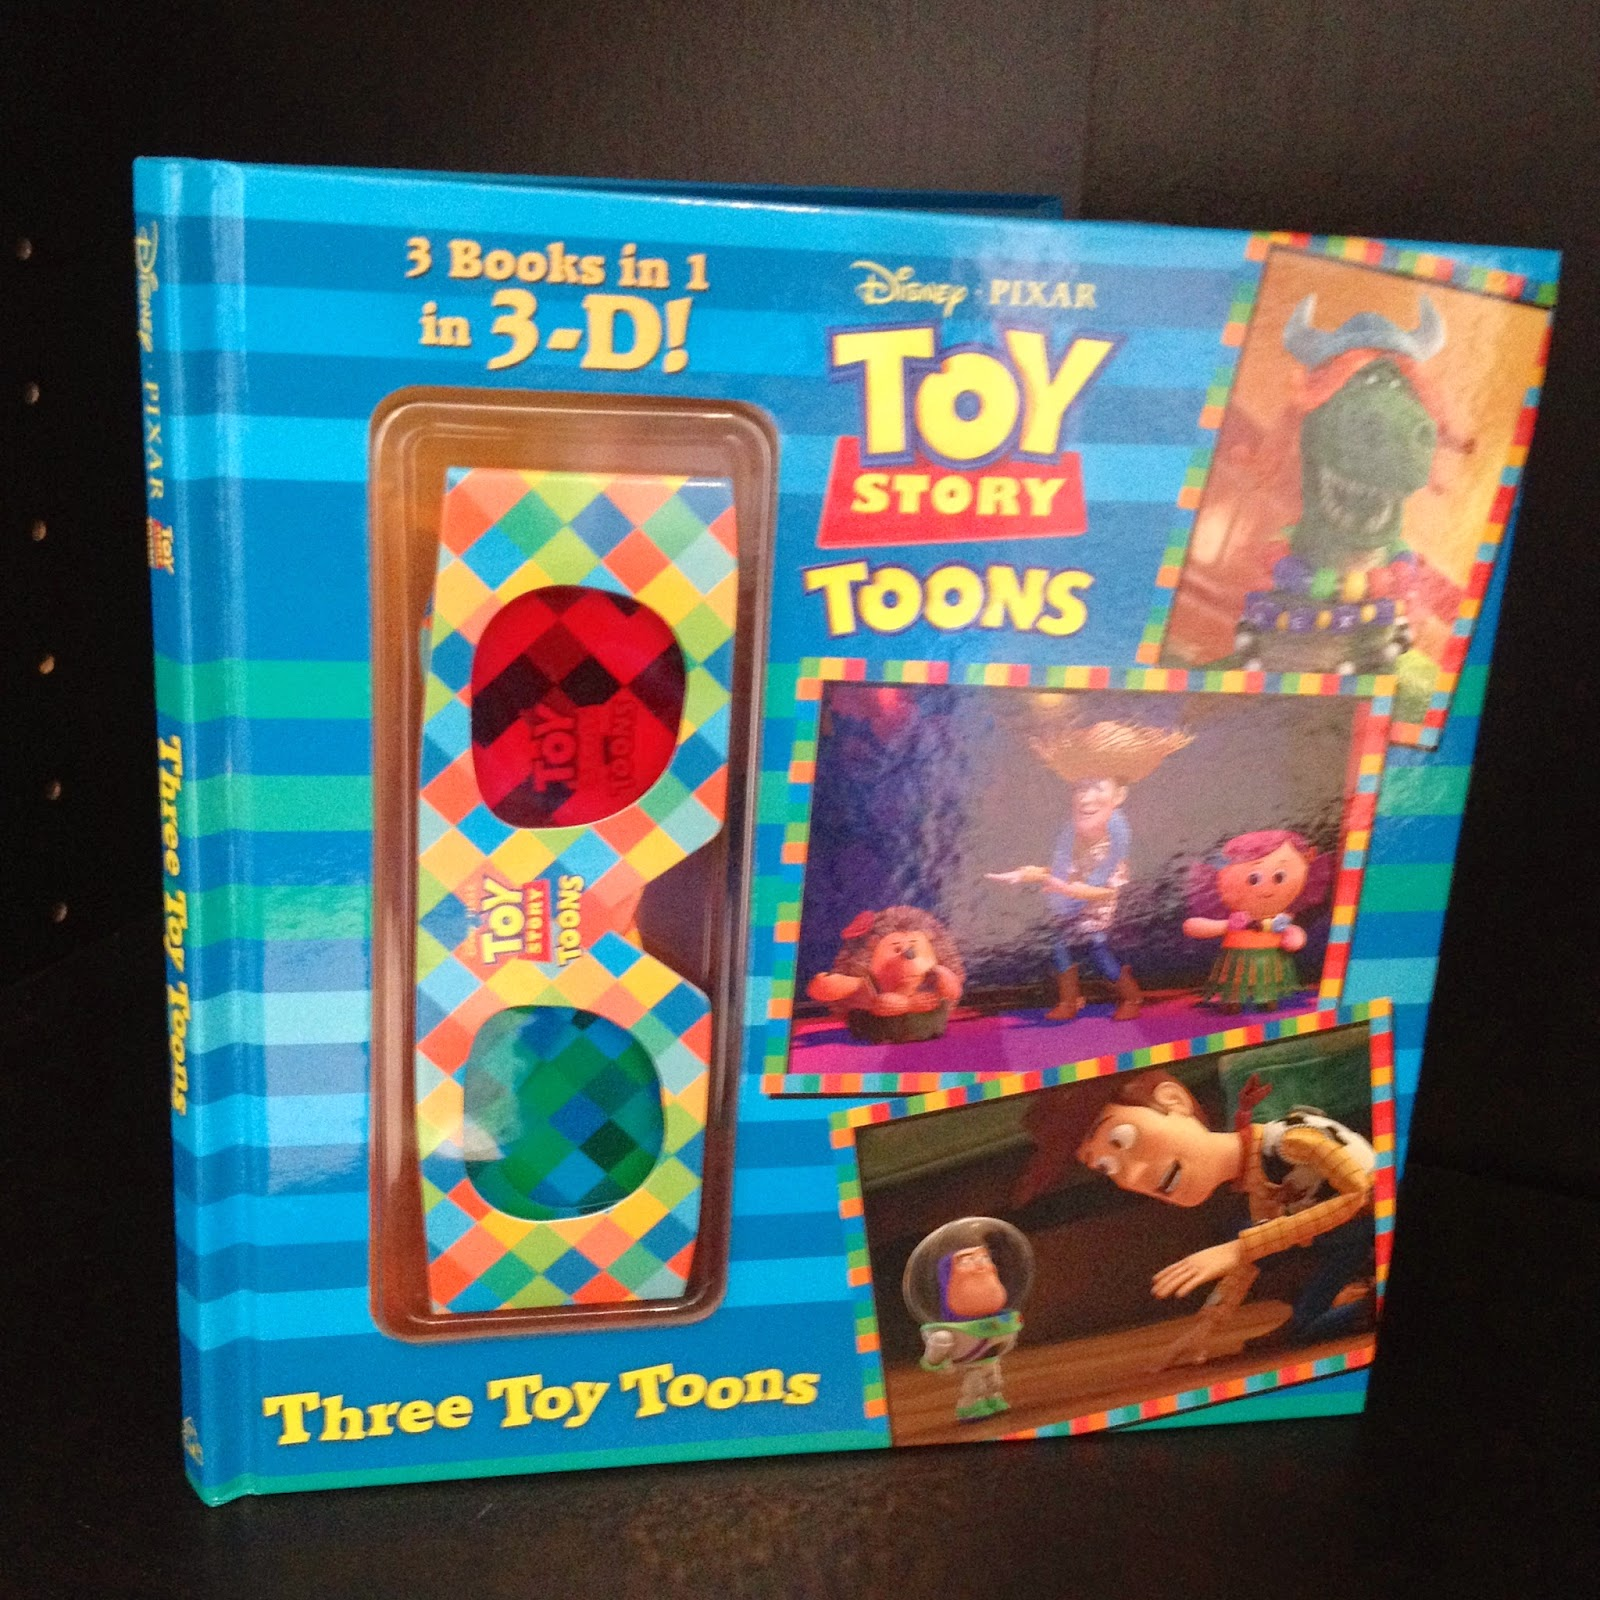 Toy Story Toons Three Toy